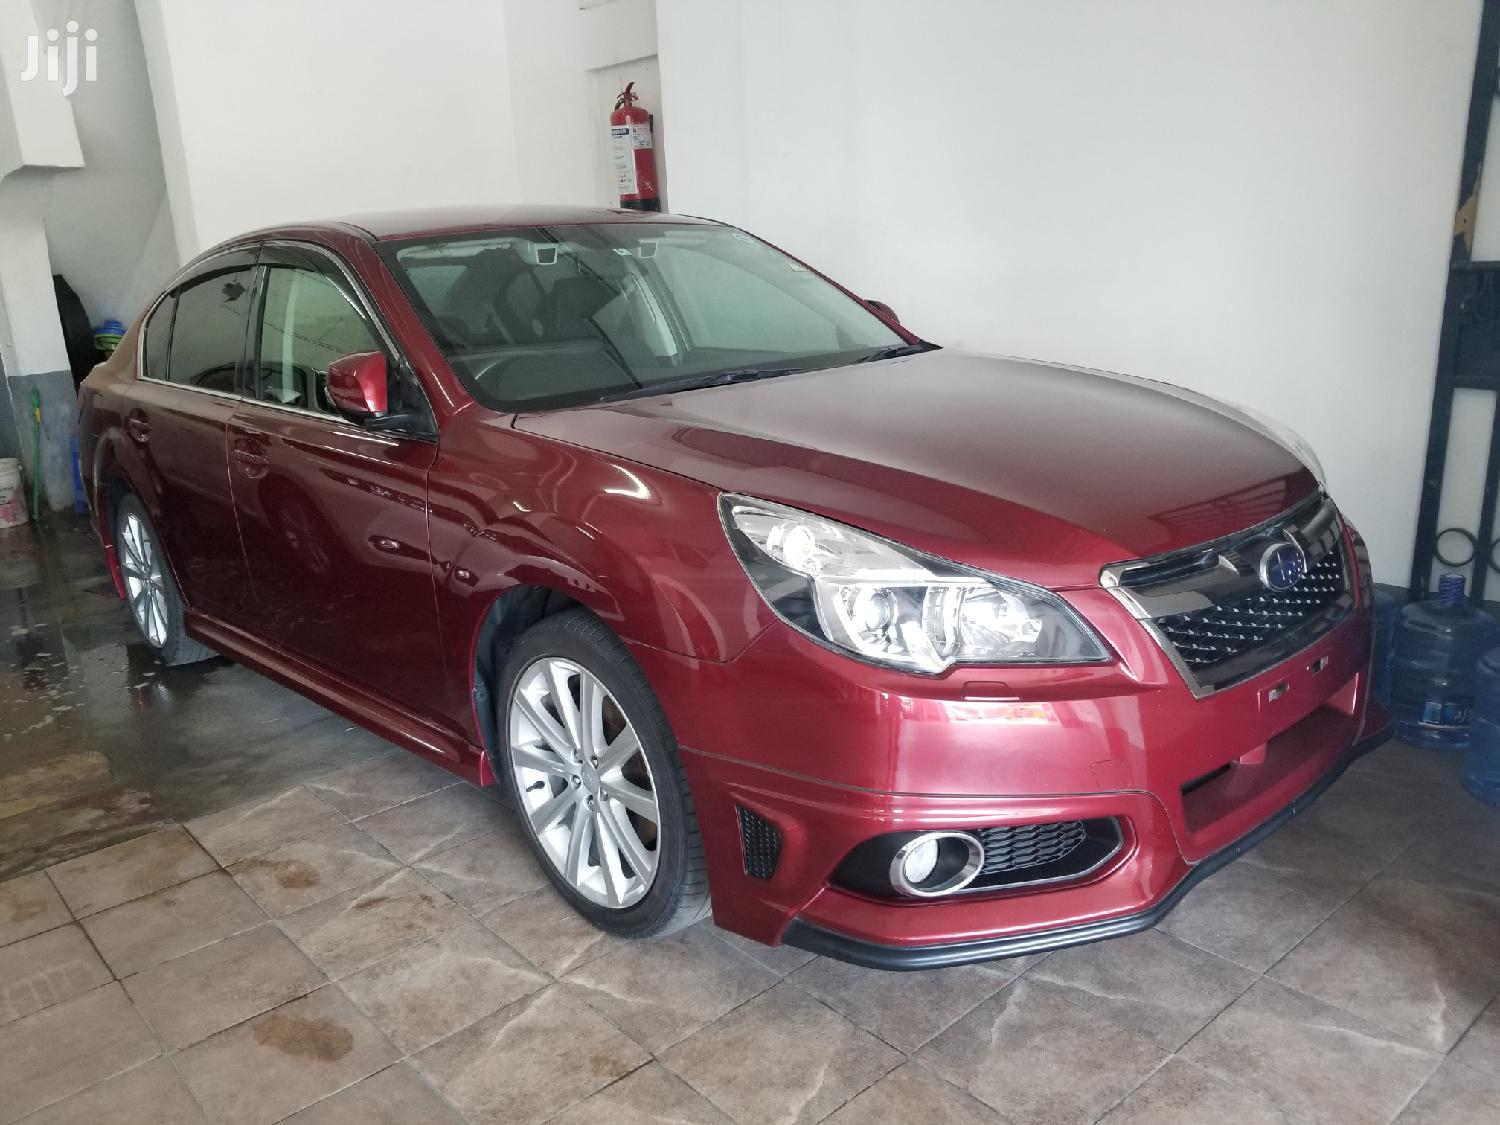 Archive: Subaru Legacy 2012 Red